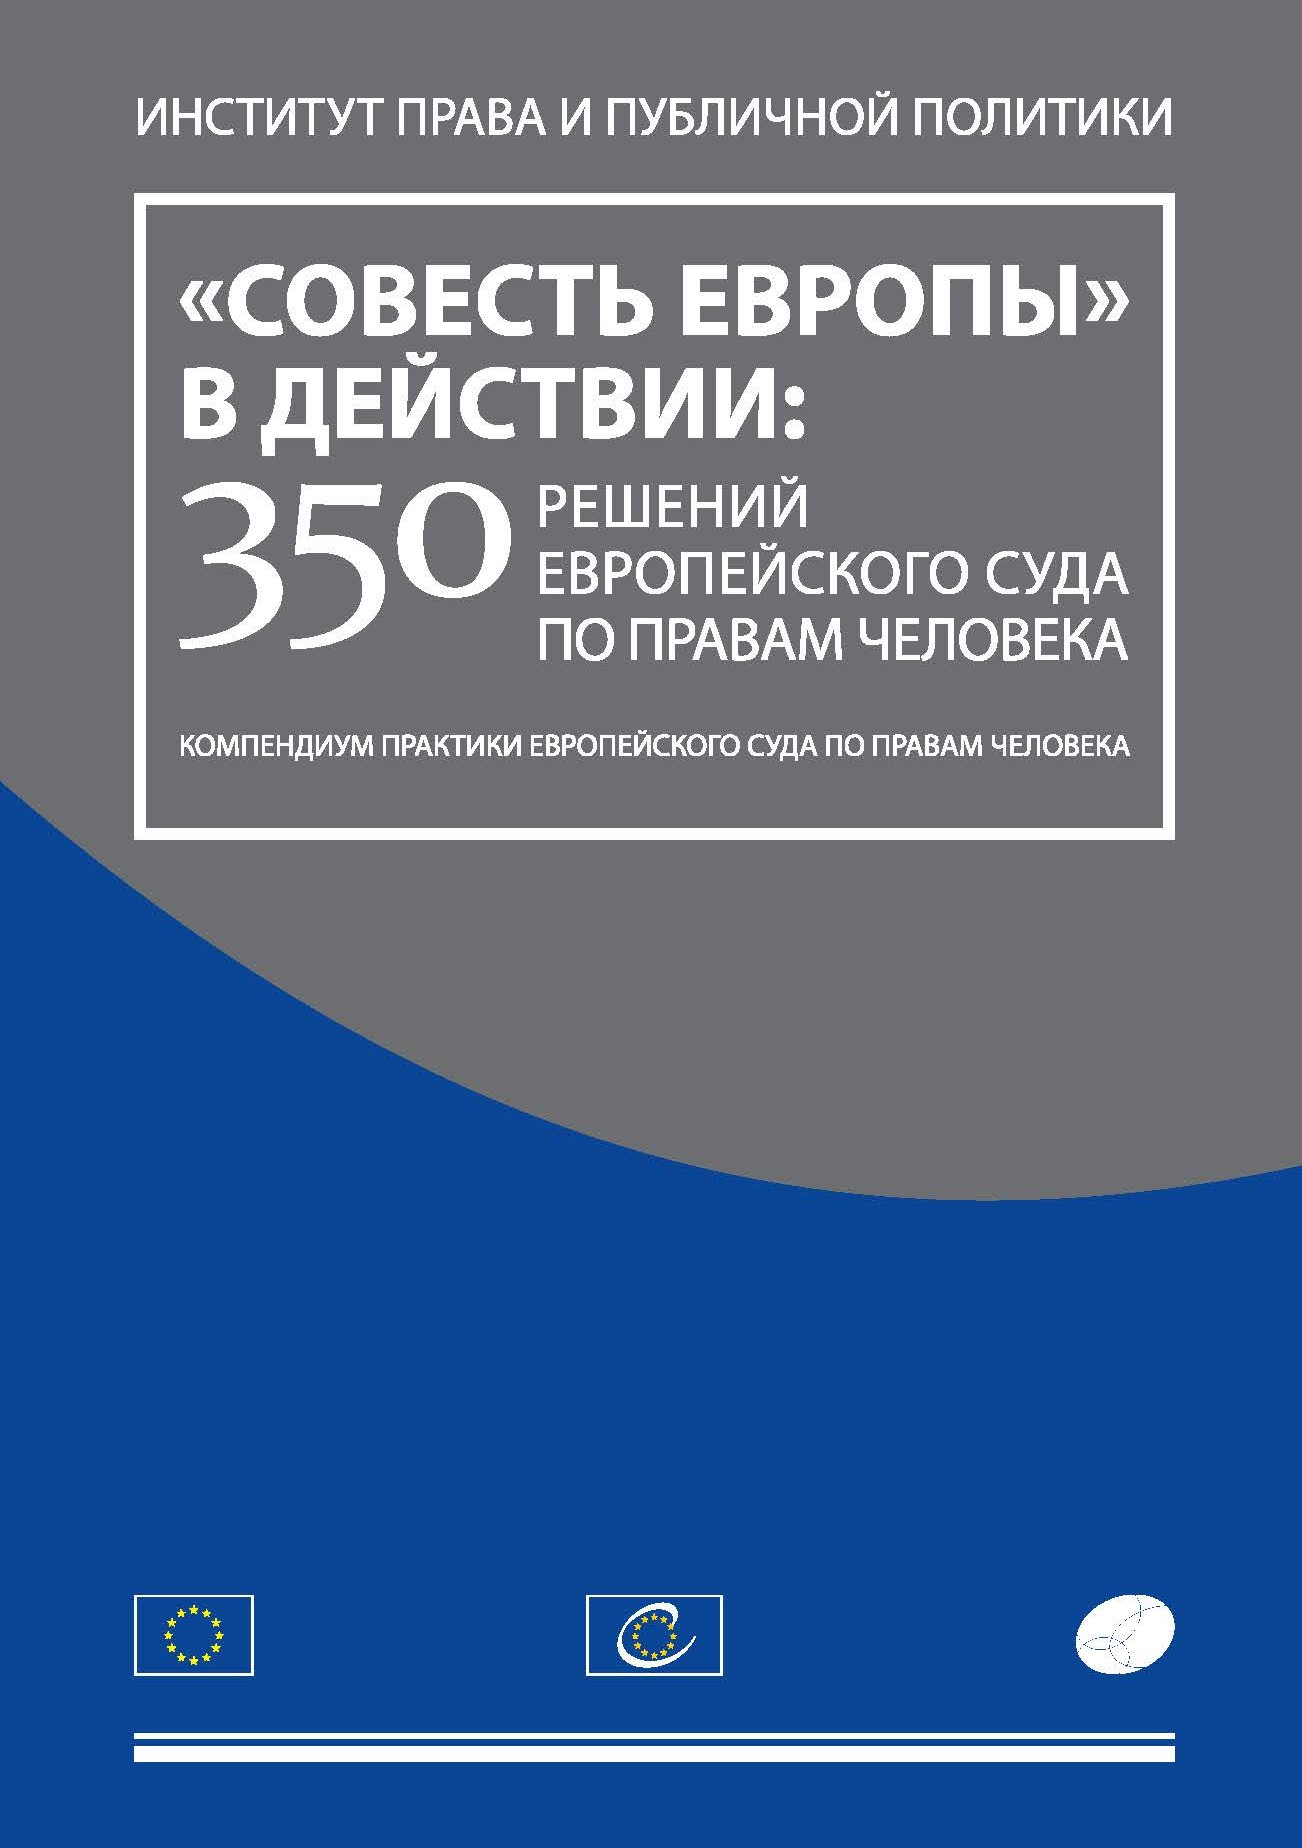 Collection of 350 decisions of the ECHR